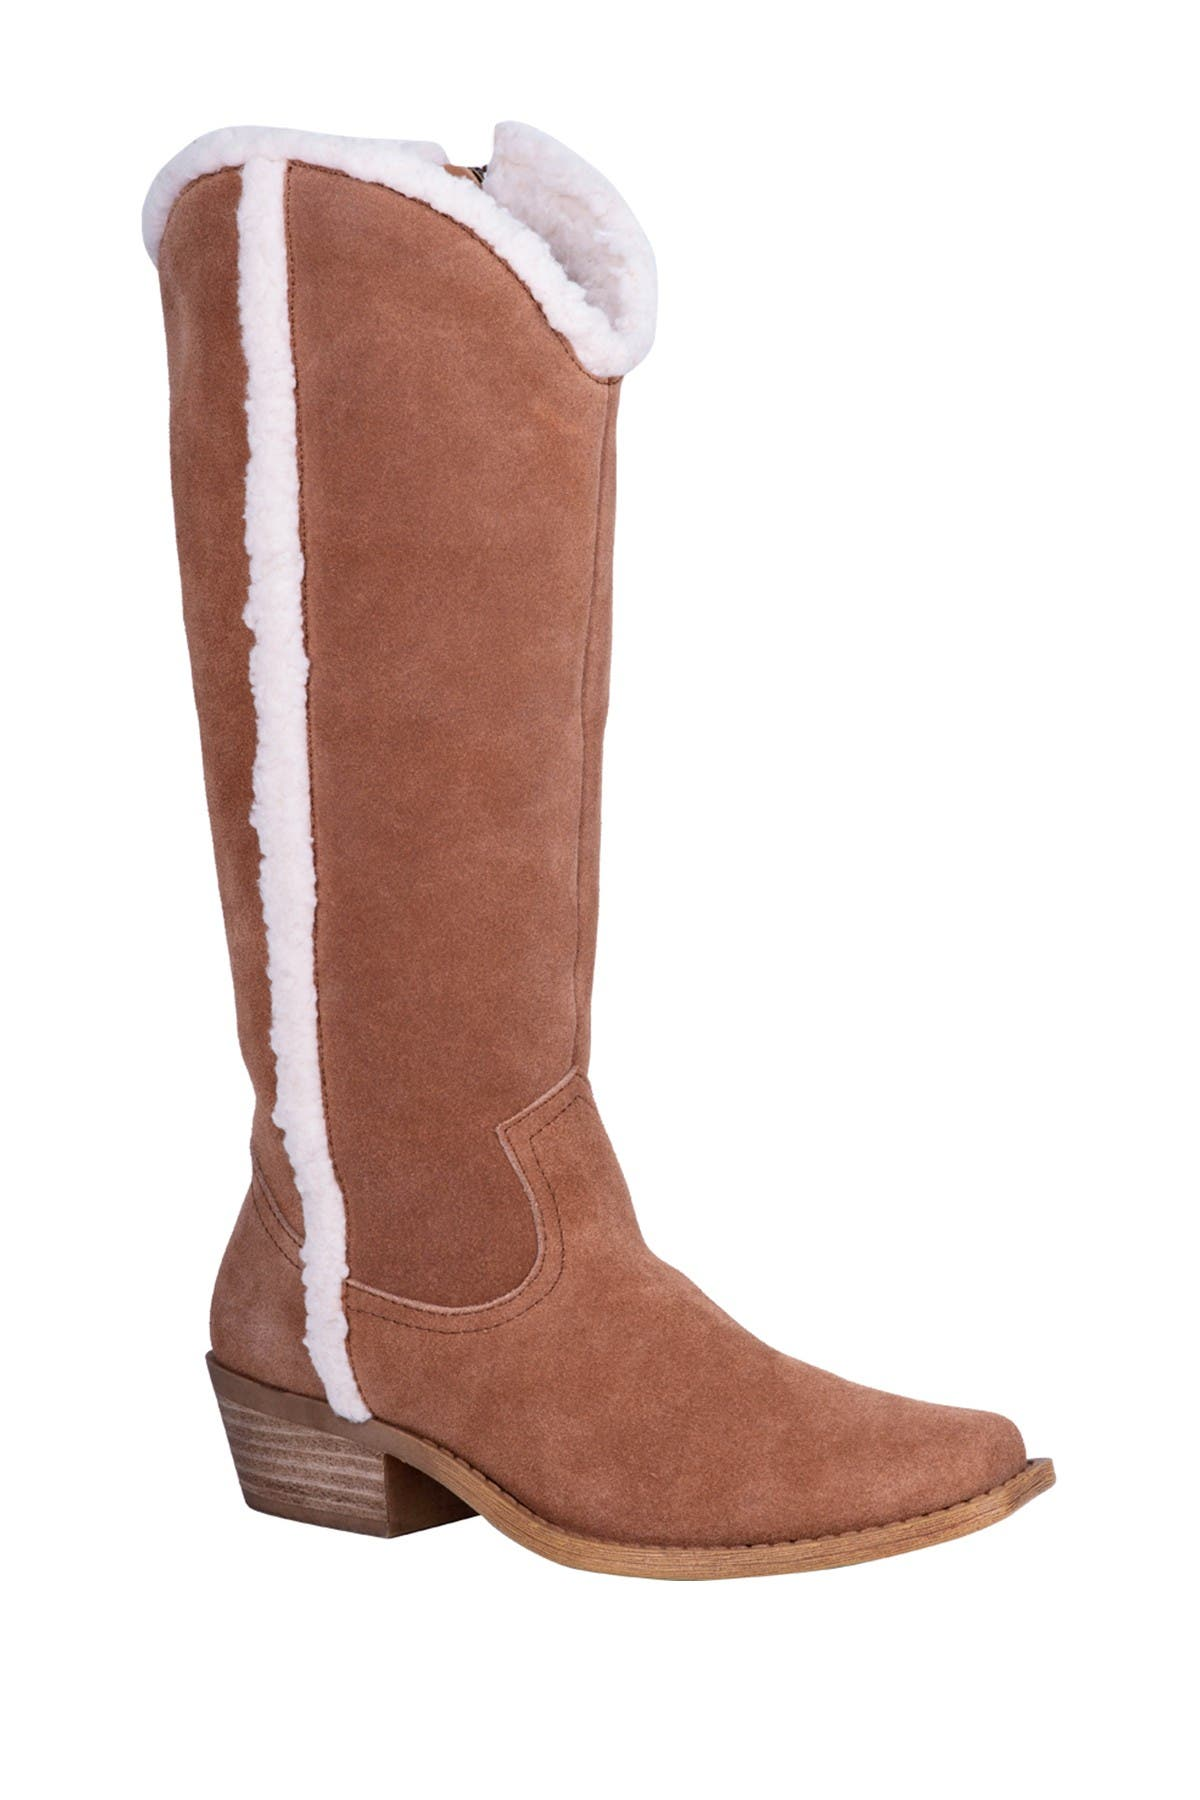 Image of DINGO Jango Faux Shearling Lined Tall Boot